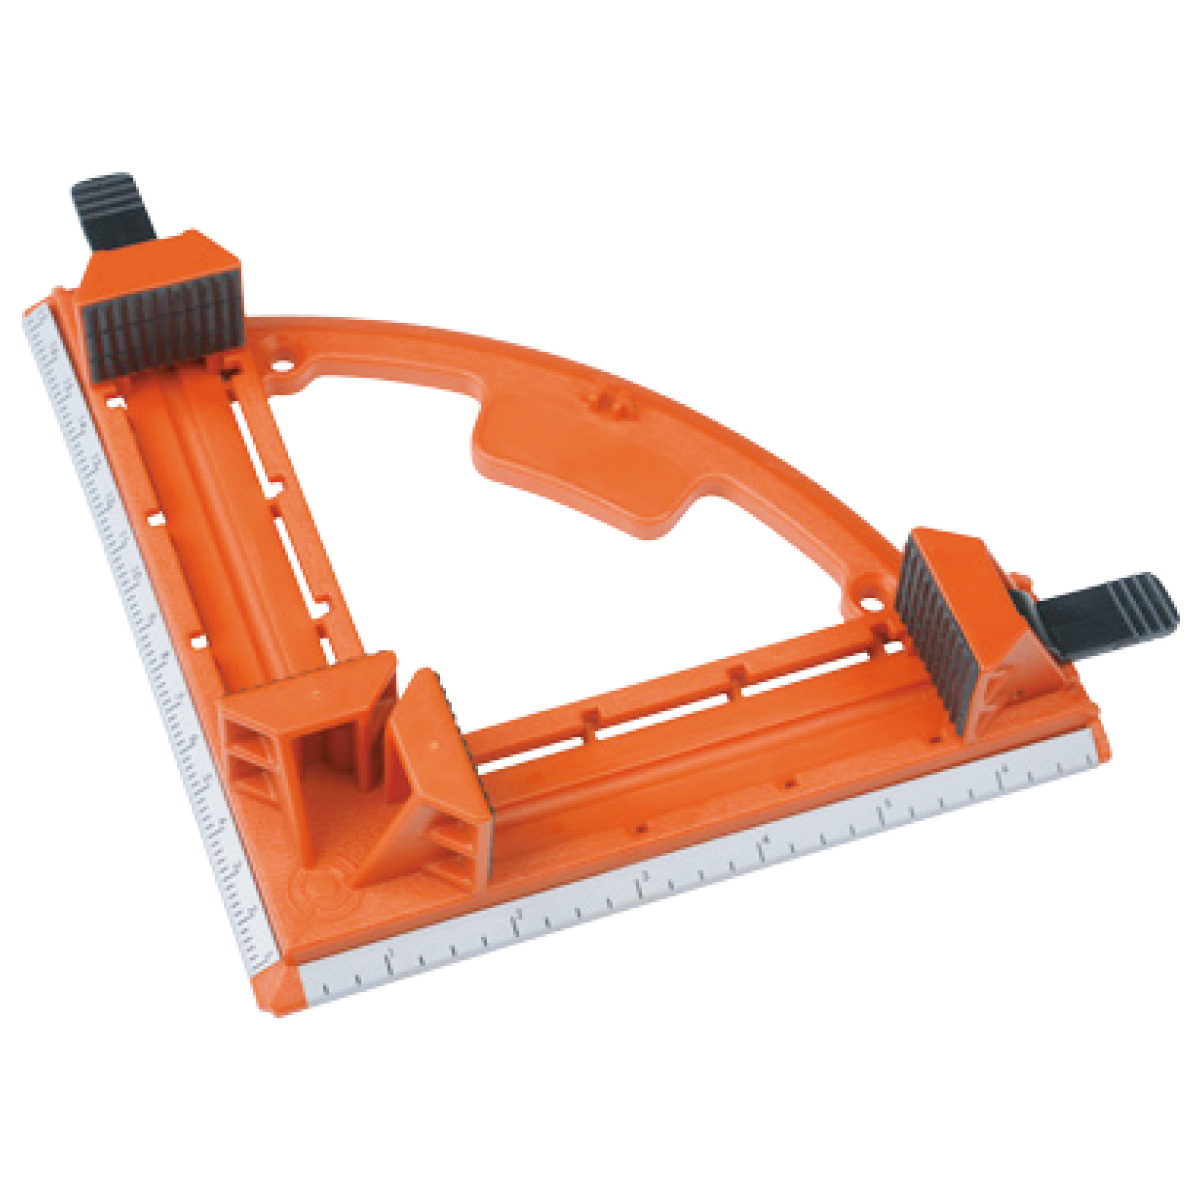 PLASTIC ANGLE CLAMP